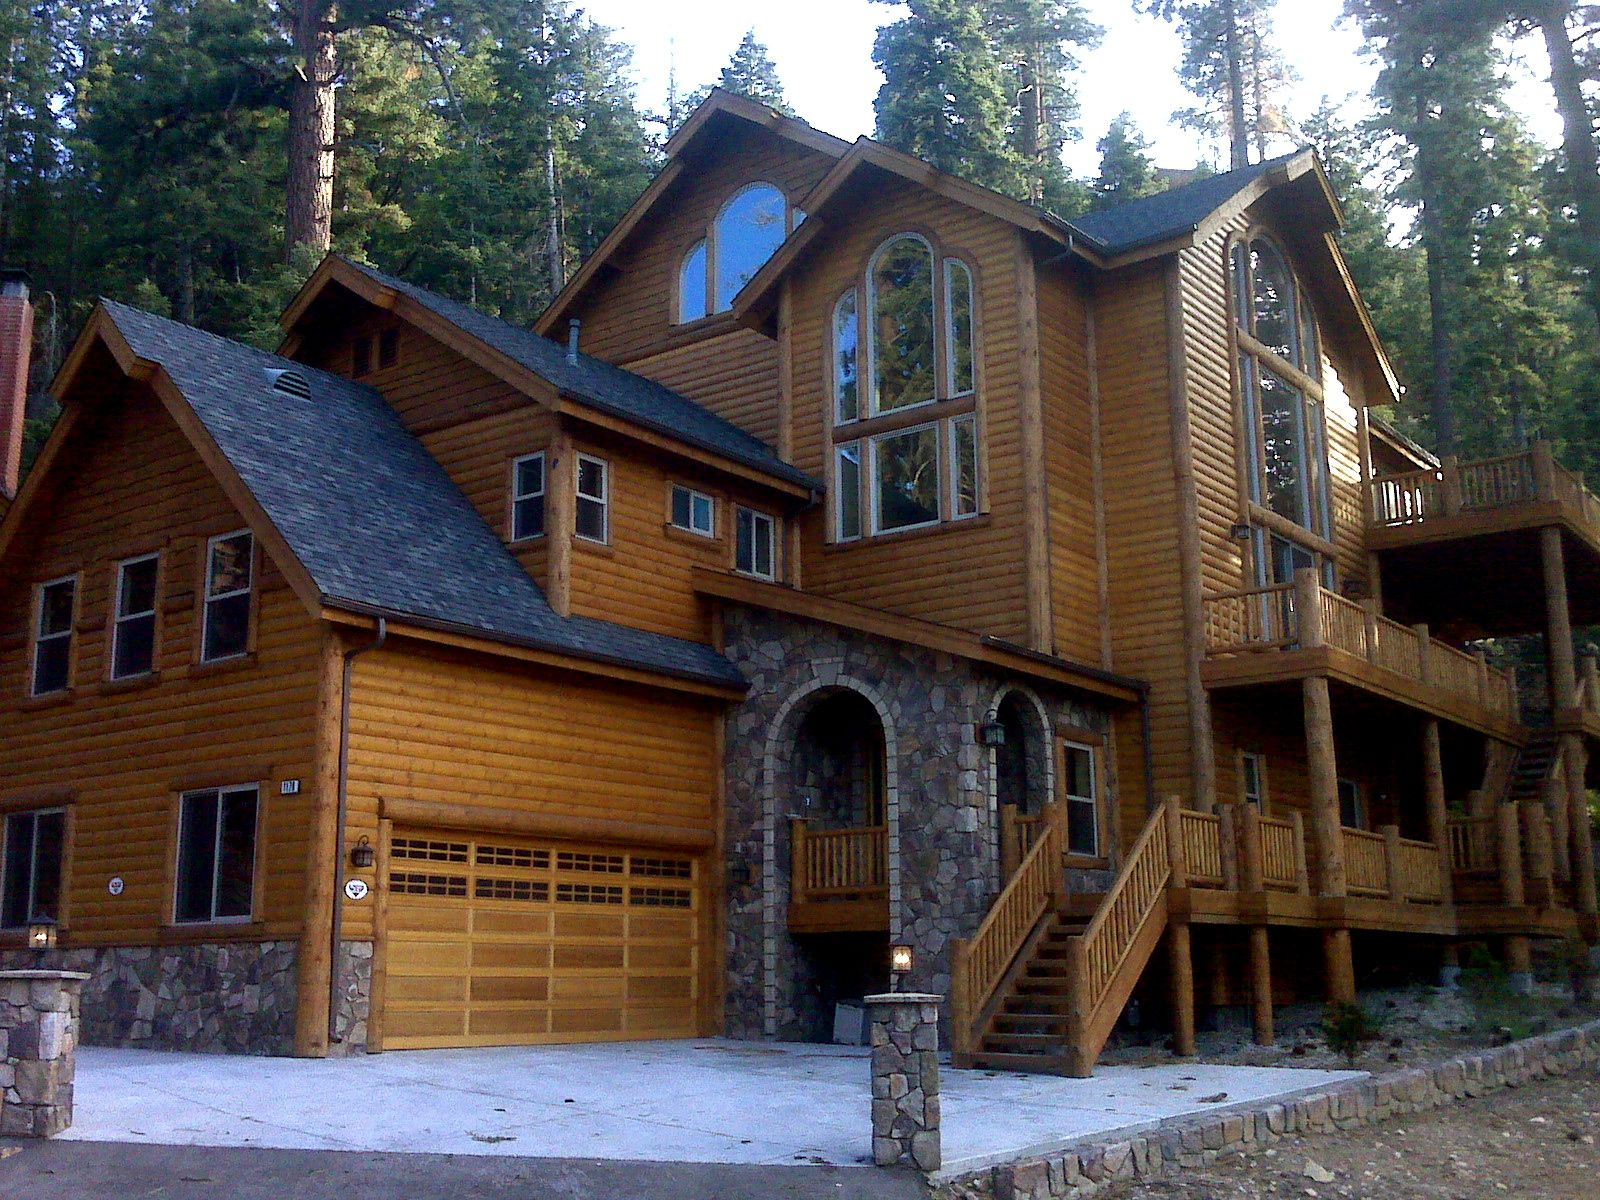 Gold rush resort rentals offers big bear cabin rentals and for Big bear 2 person cabin